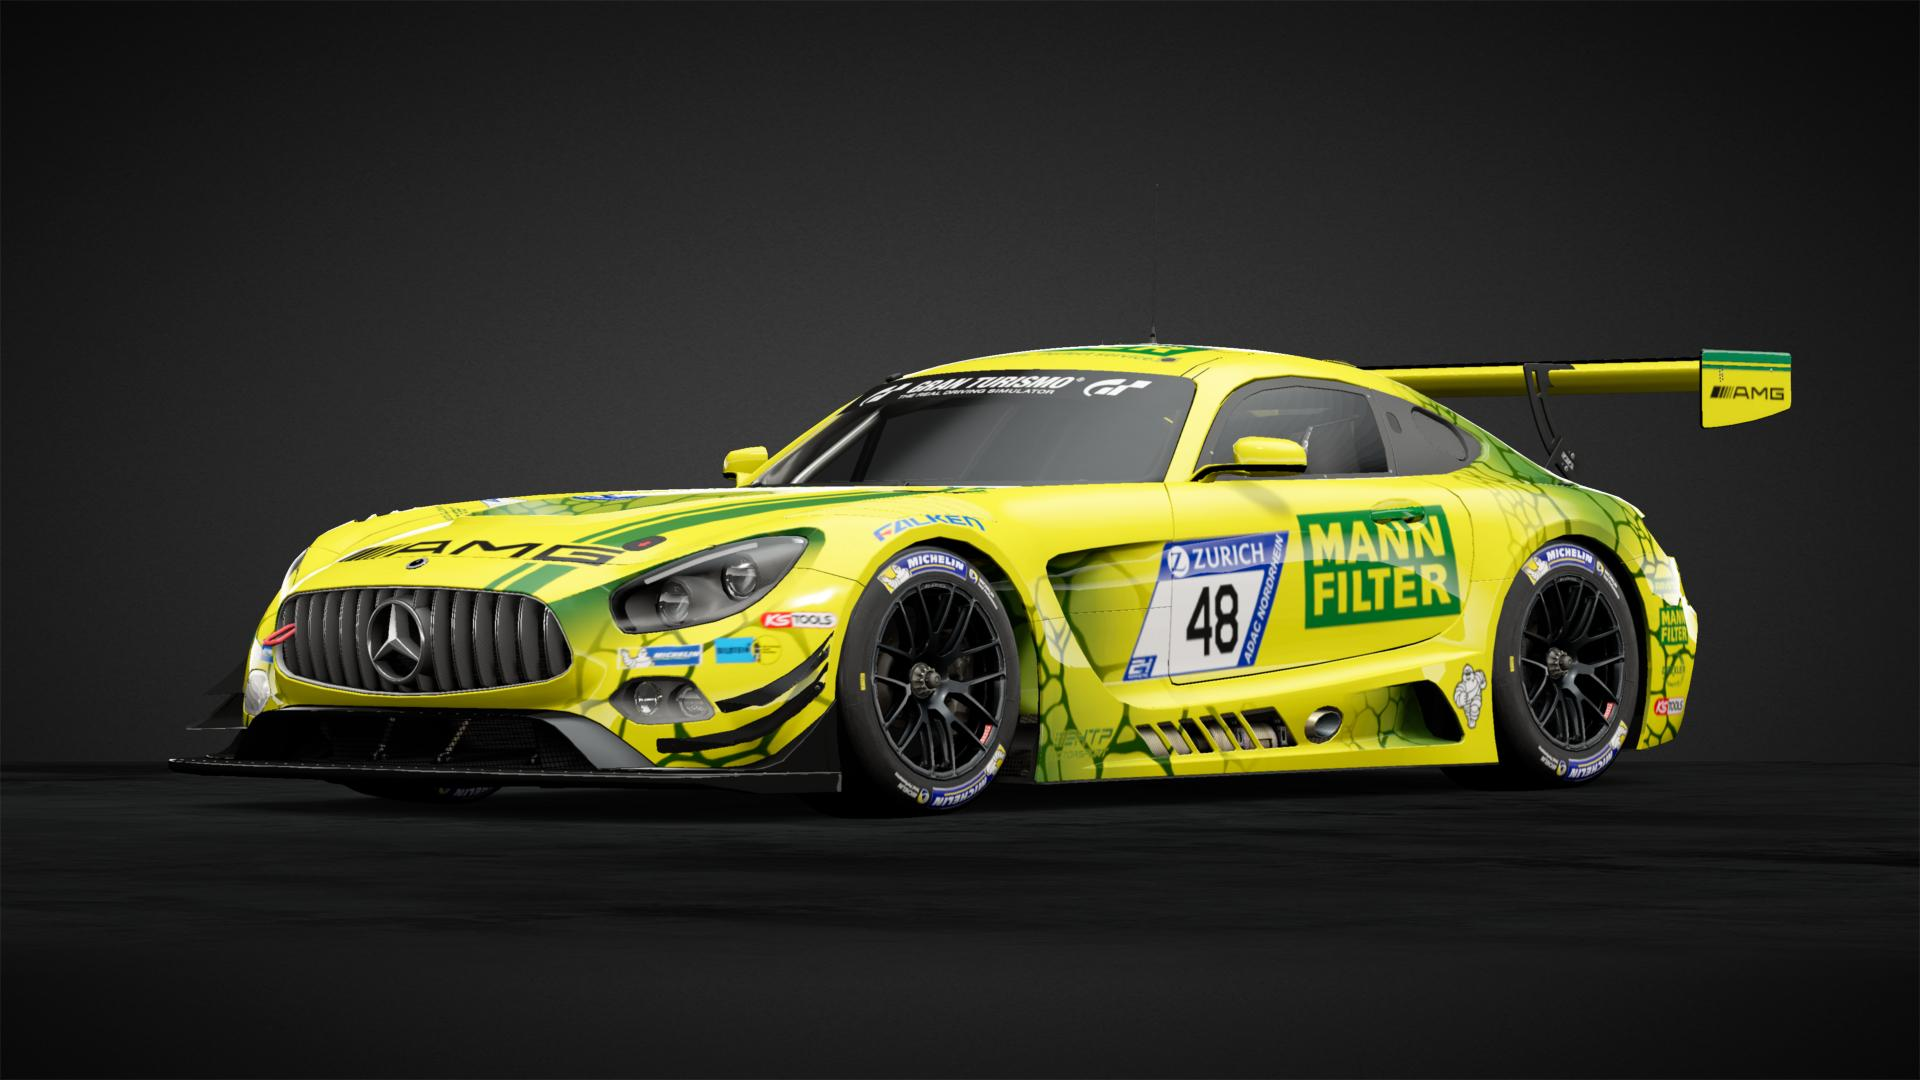 Replica 2018 Amg Green Mamba Car Livery By Mike Stafford Community Gran Turismo Sport